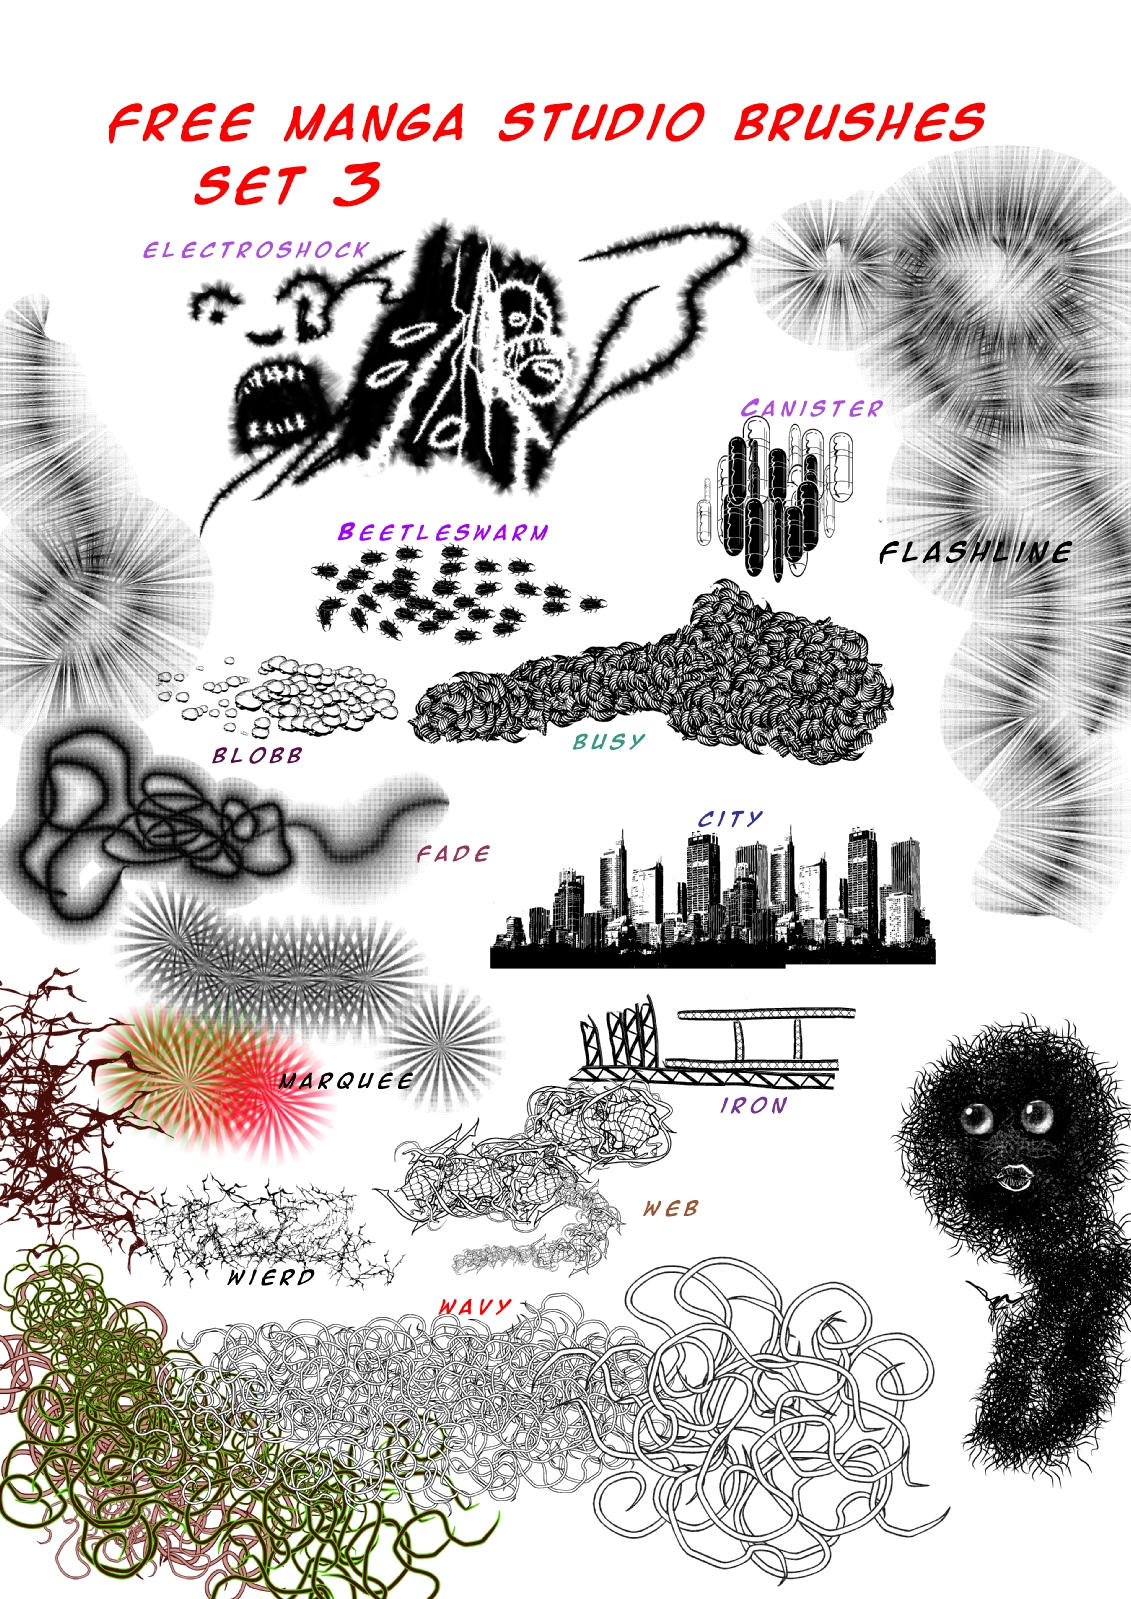 Manga Studio version 4 Free Brushes set 3 by 888toto